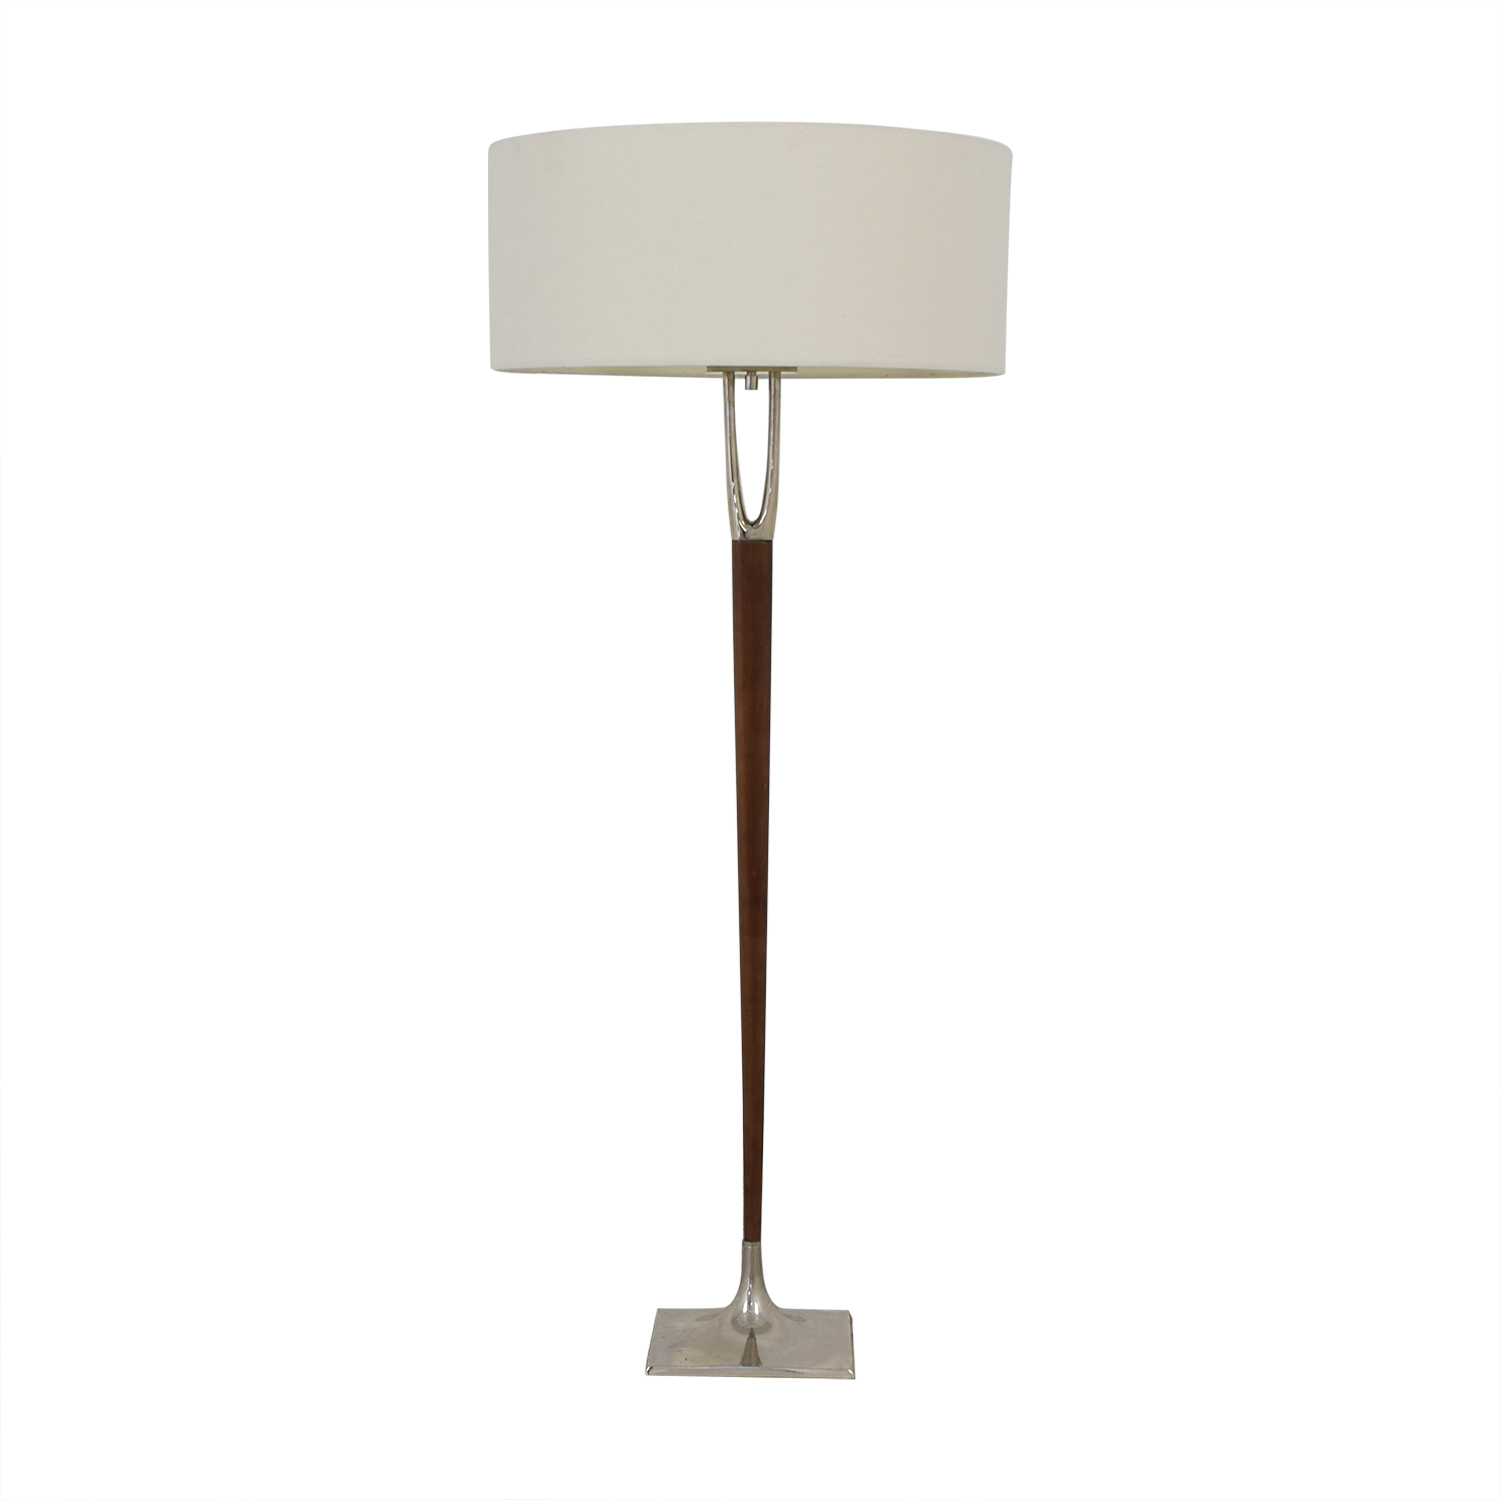 buy Rejuvenation Tall Floor Lamp Rejuvenation